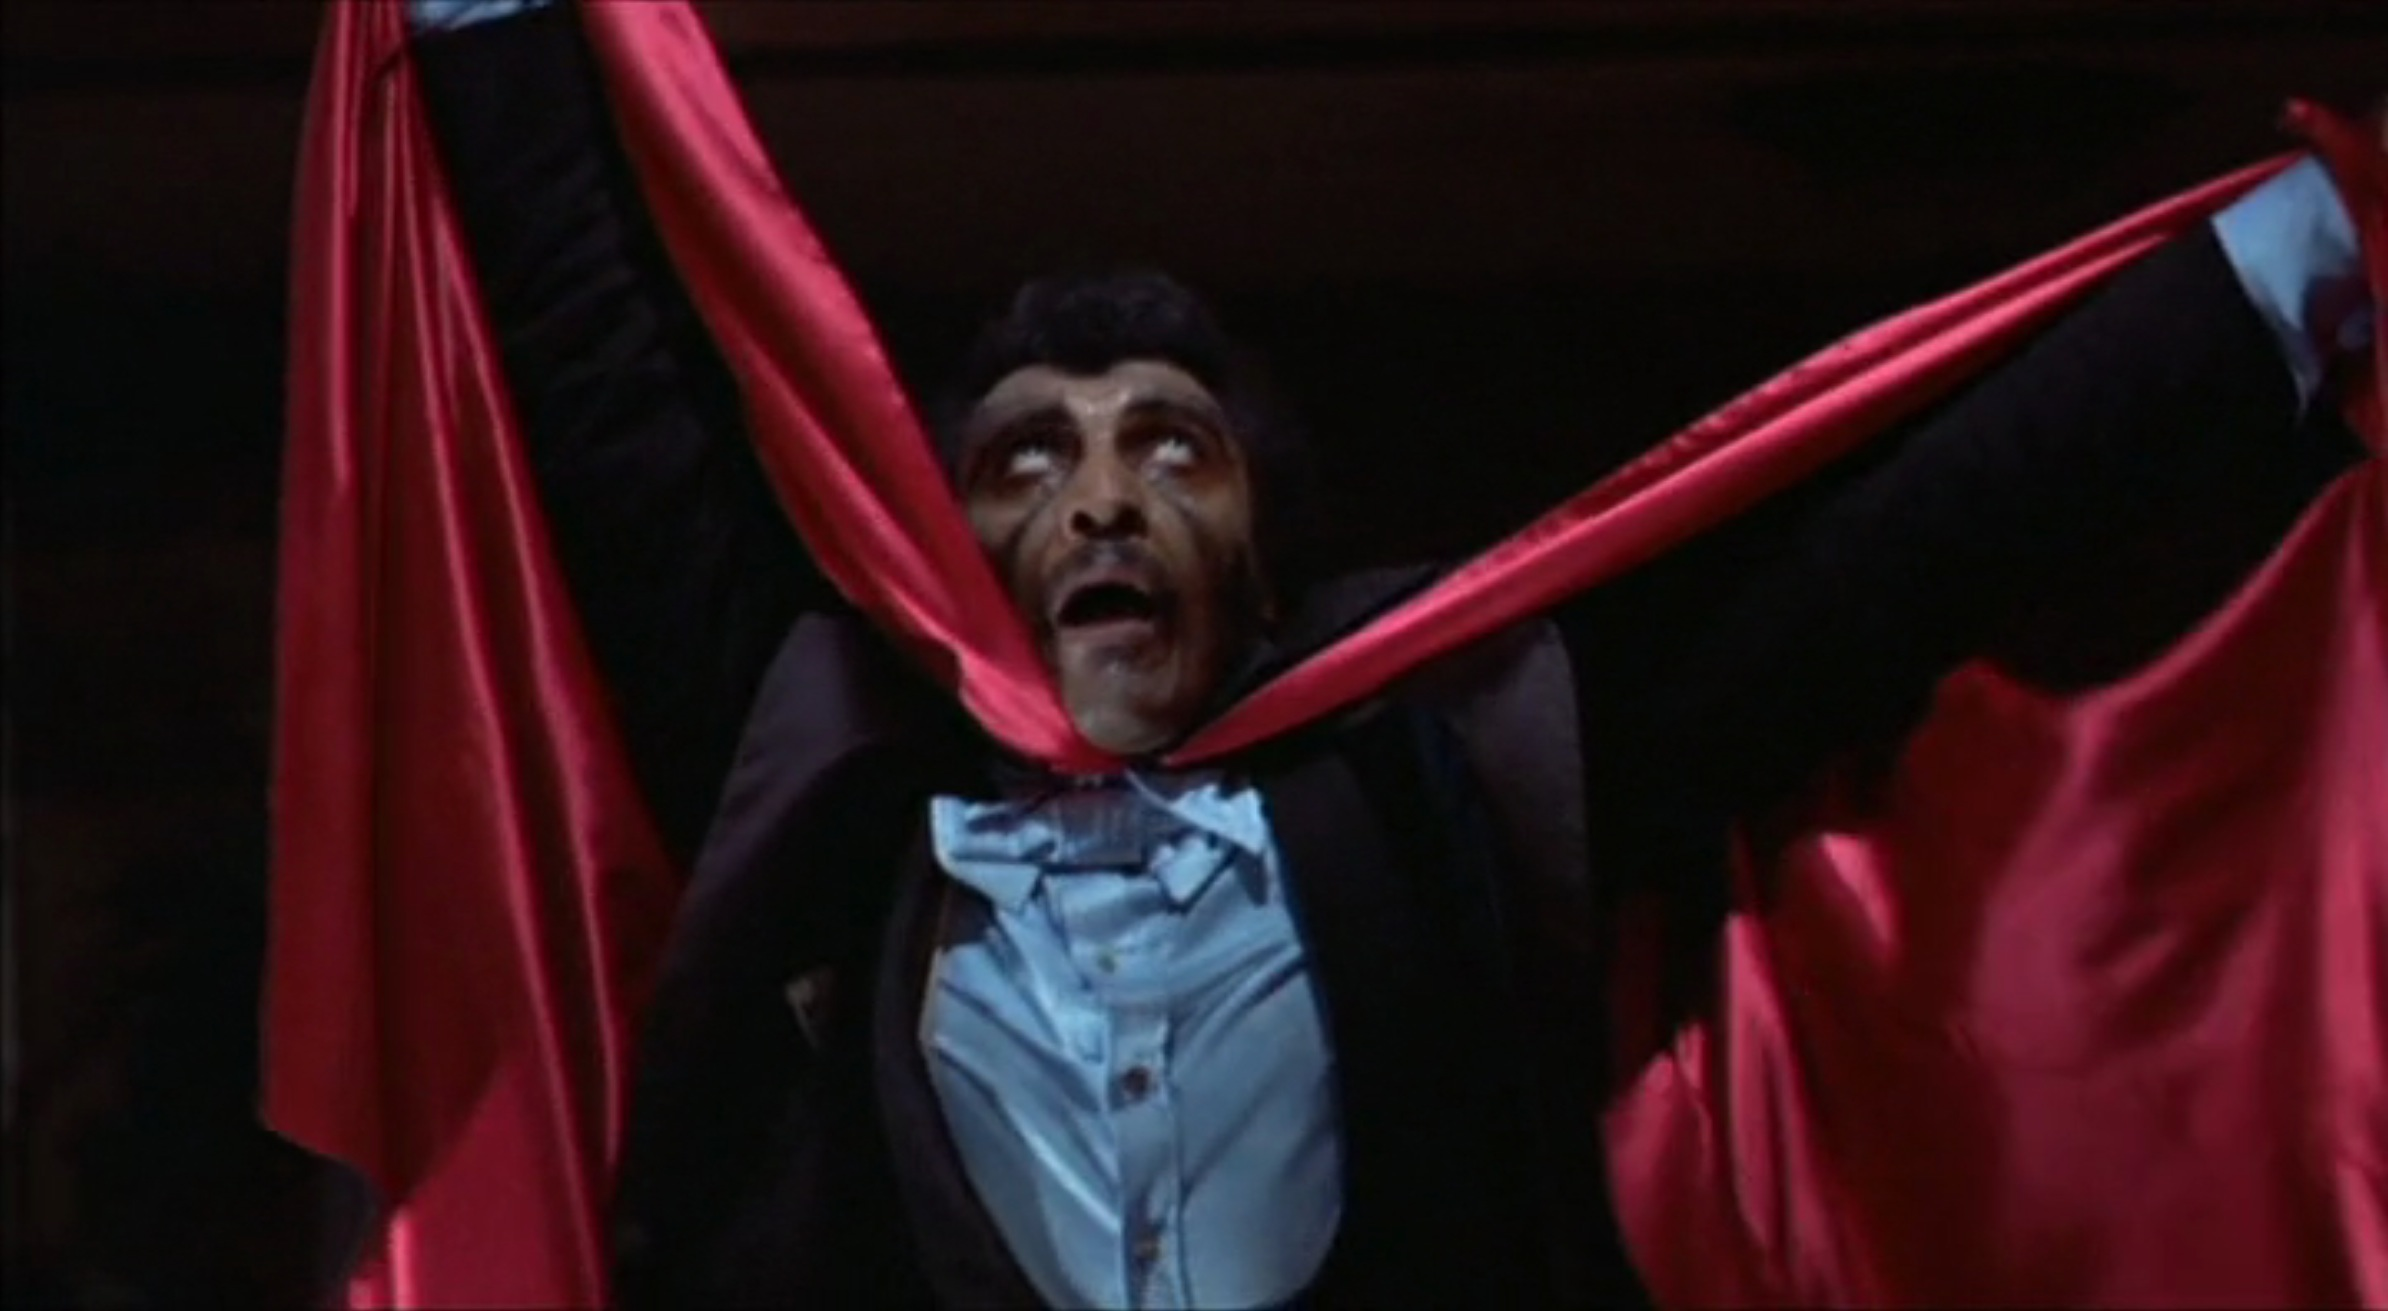 SCREAM_BLACULA_SCREAM15